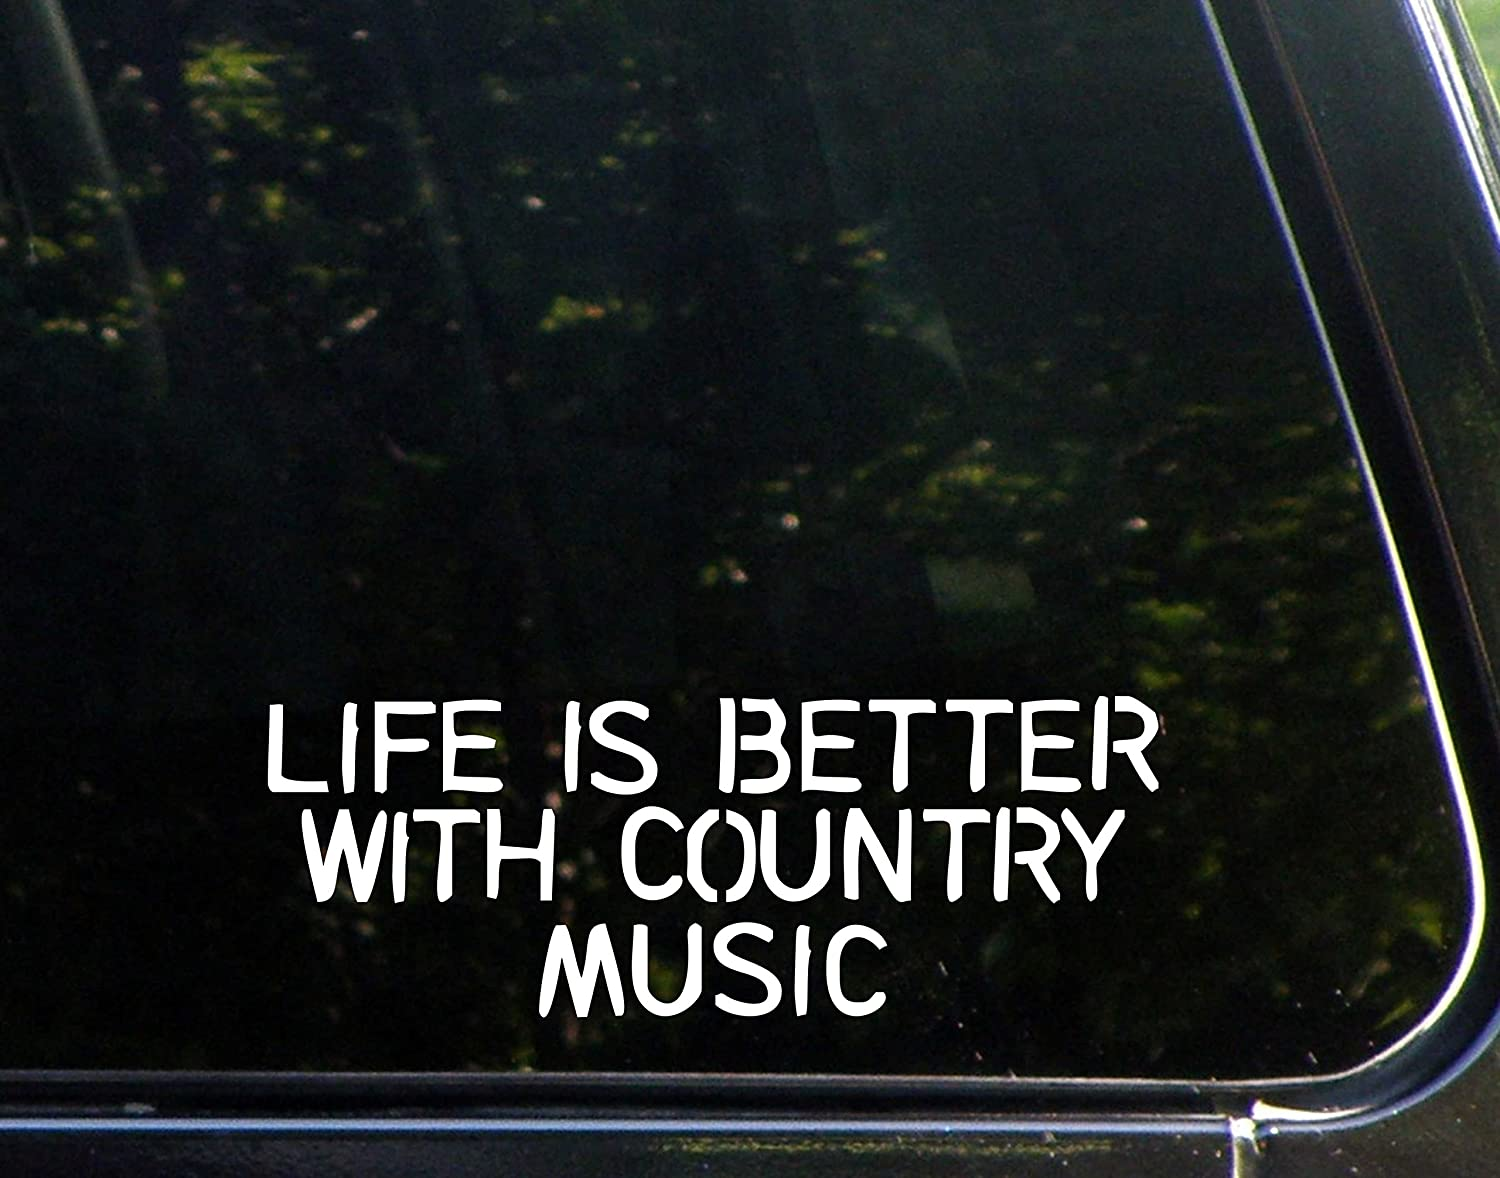 "Life is Better with Country Music - 8"" x 3"" - Vinyl Die Cut Decal/Bumper Sticker for Helmets, Bikes, Windows, Cars, Trucks, Laptops, Etc."